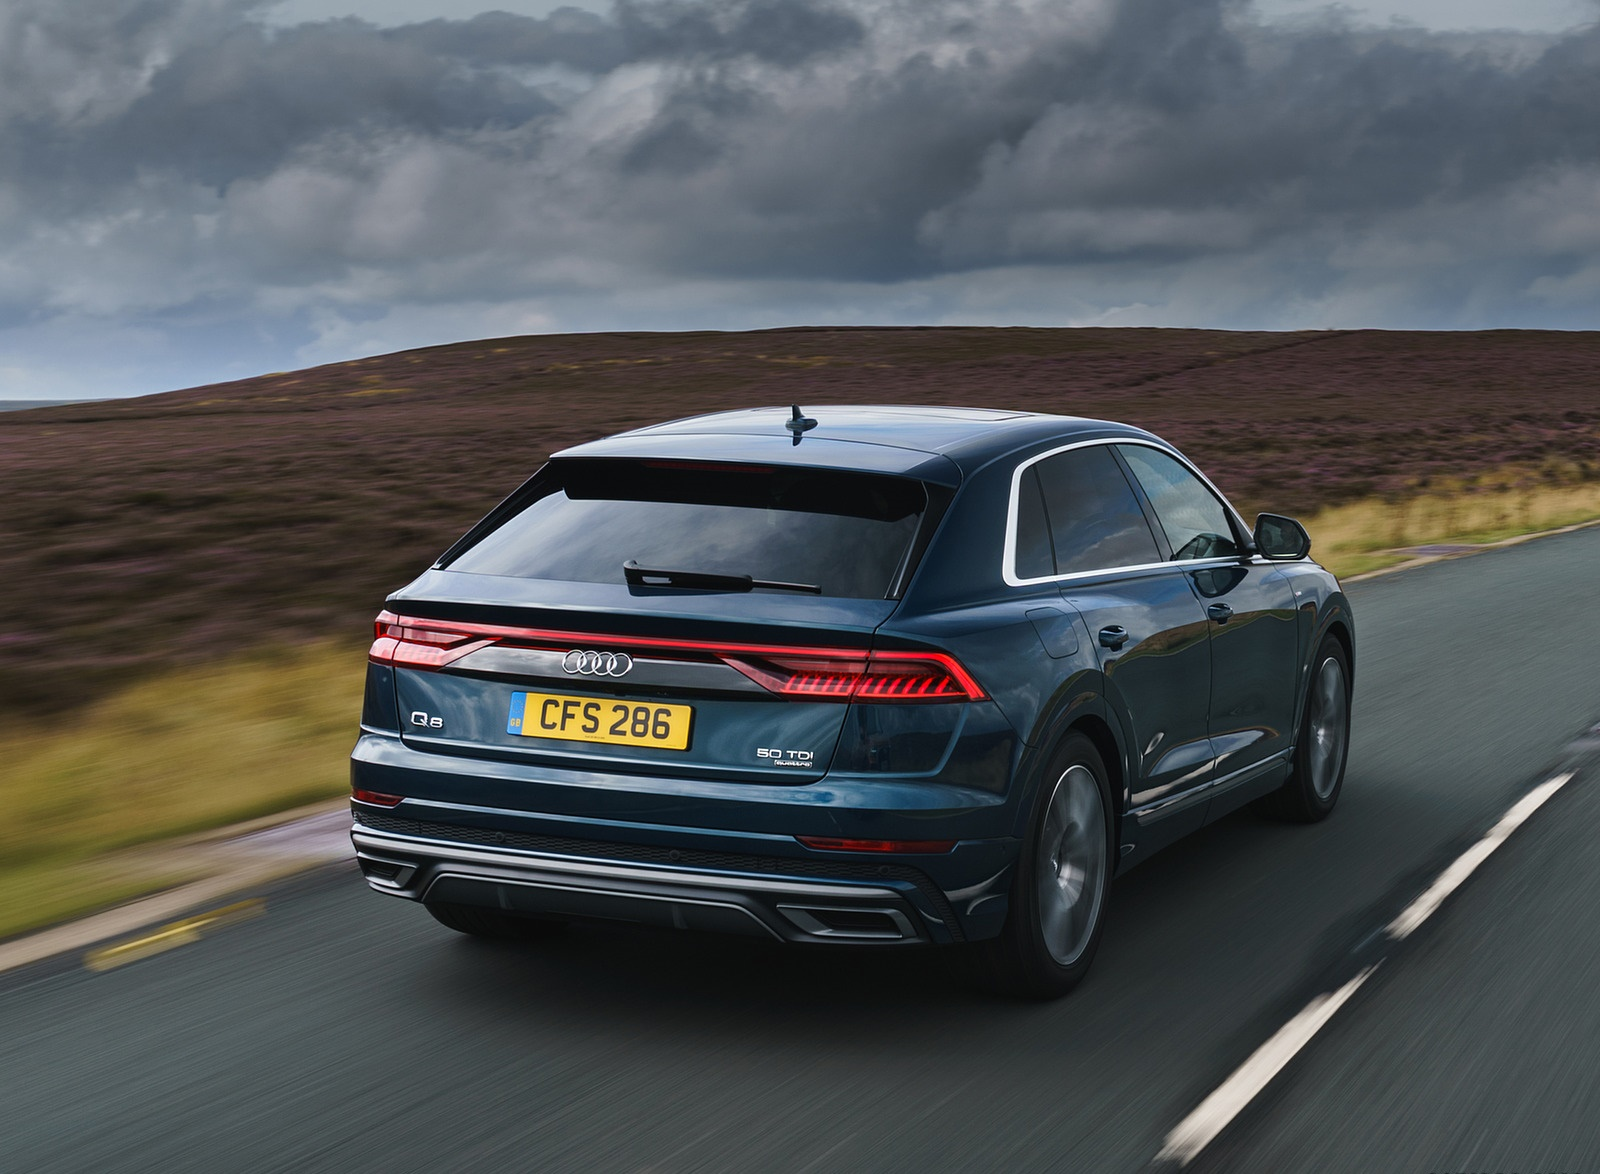 2019 Audi Q8 S Line 50 TDI Quattro (UK-Spec) Rear Three-Quarter Wallpaper (6)